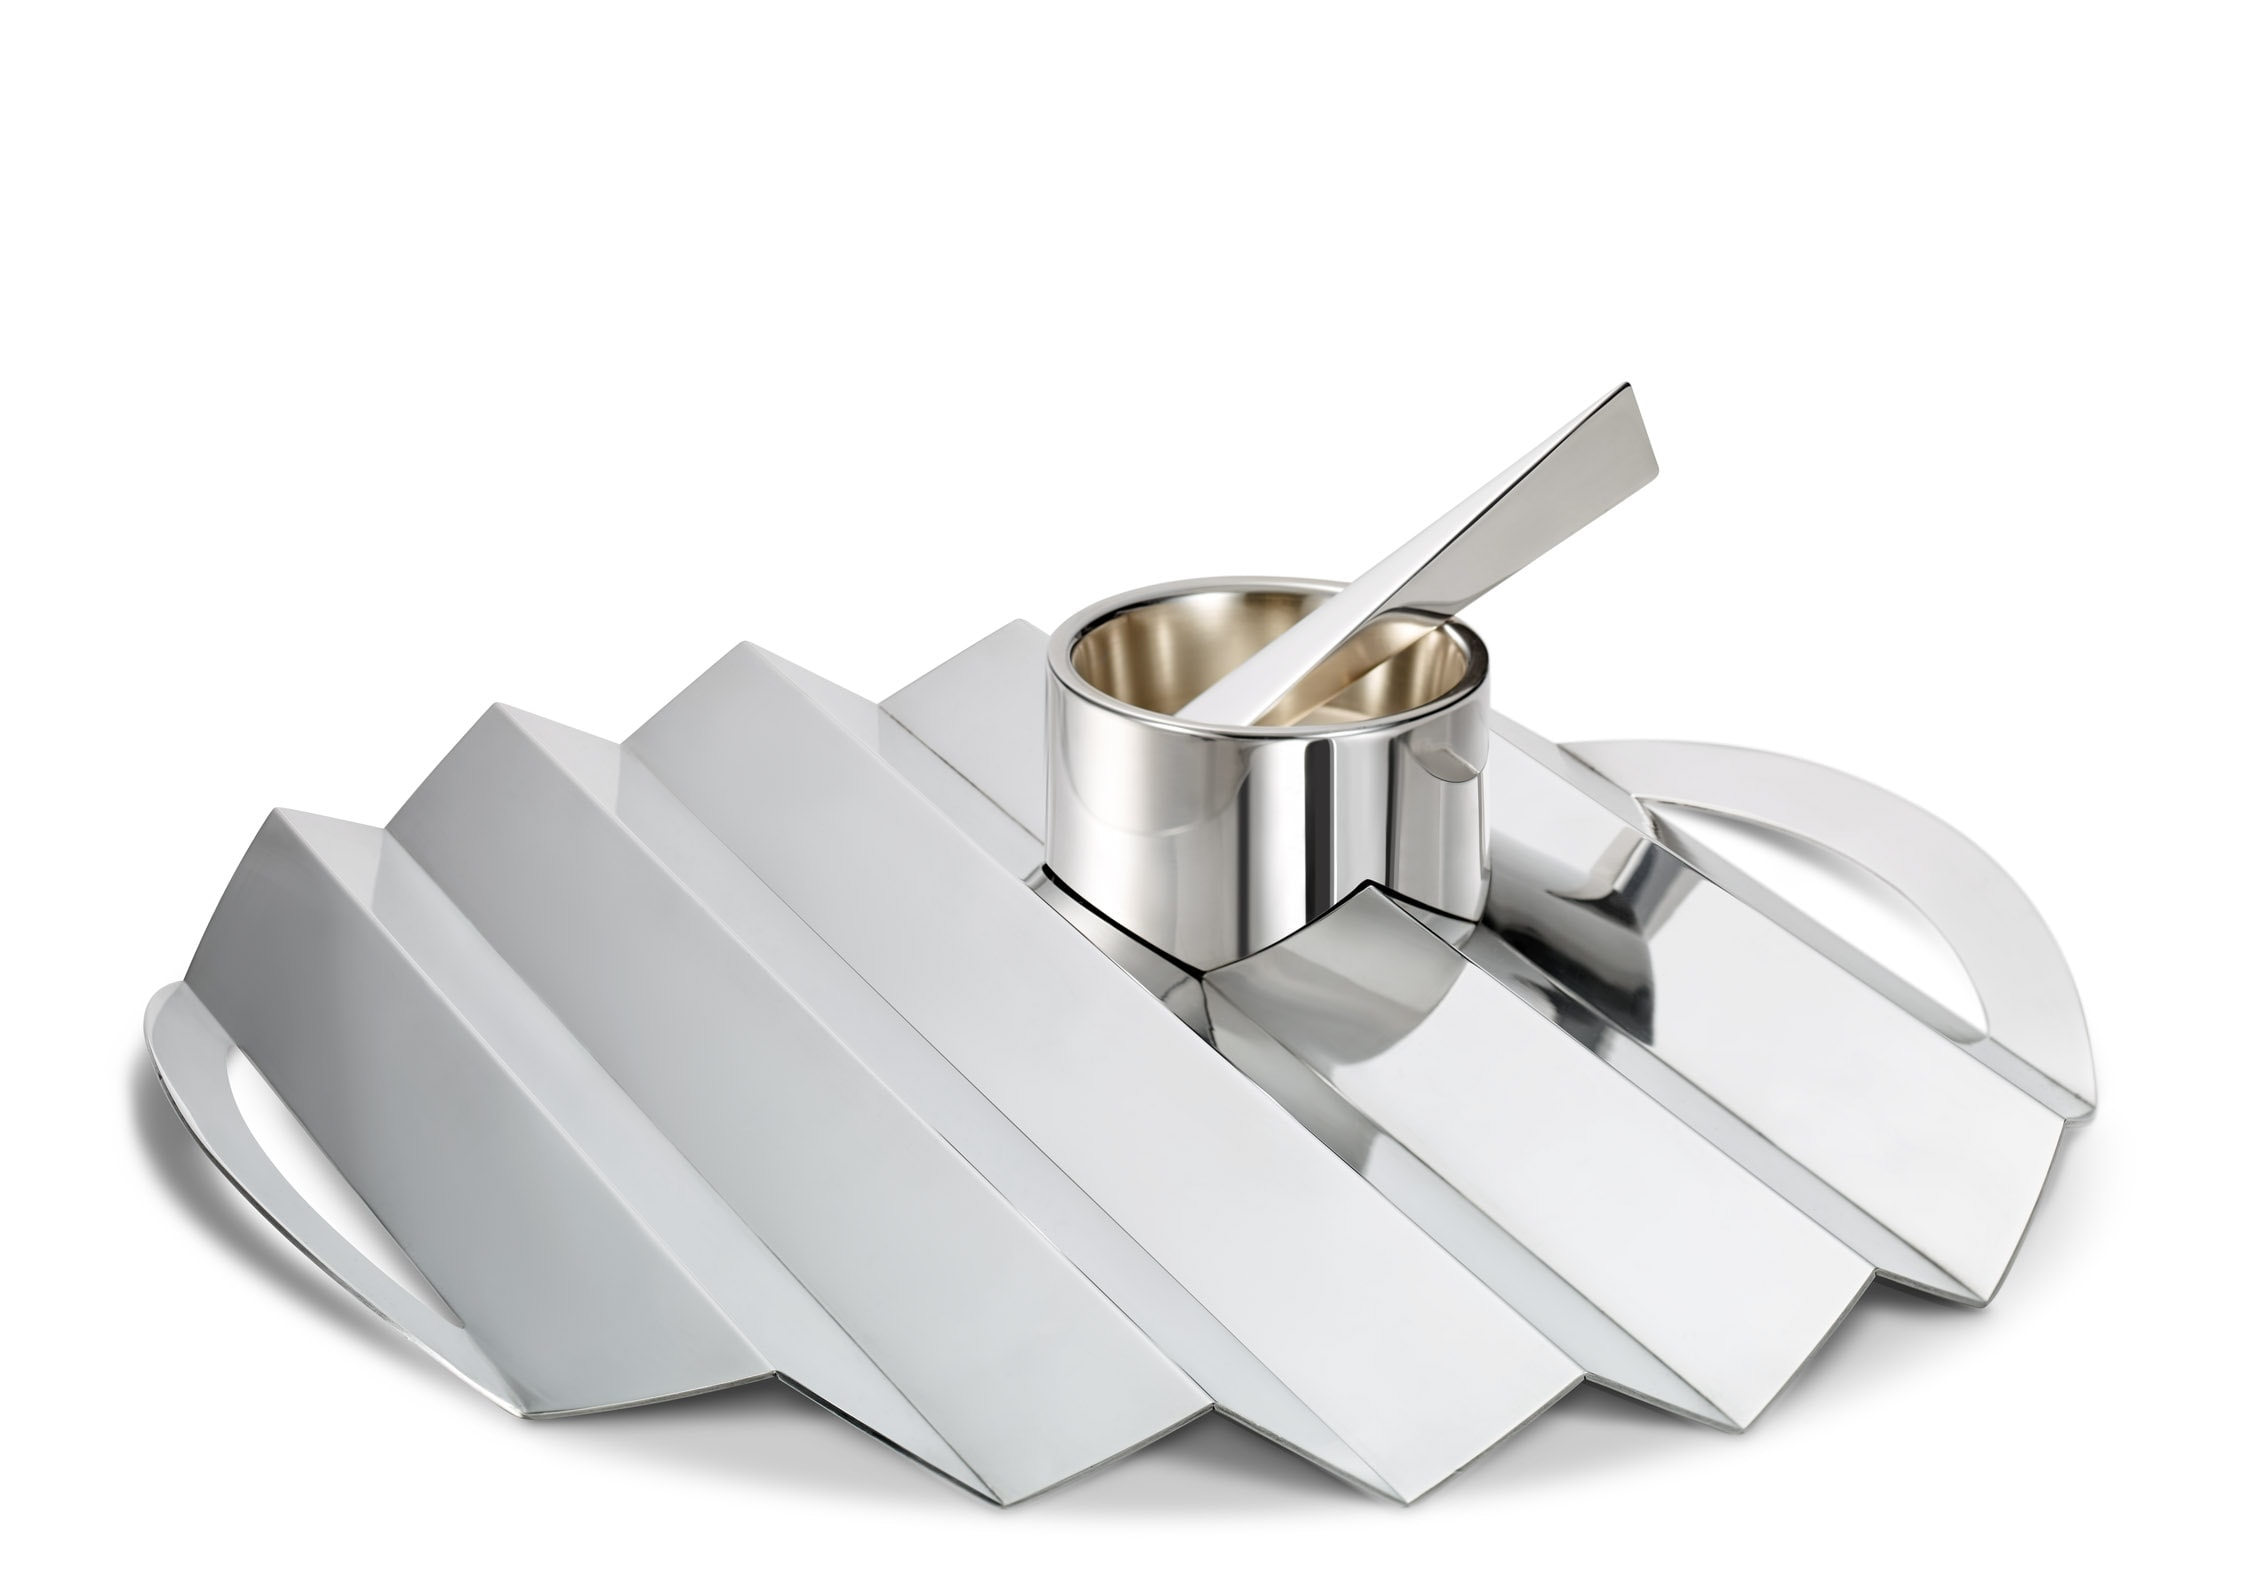 Silversmith product photography